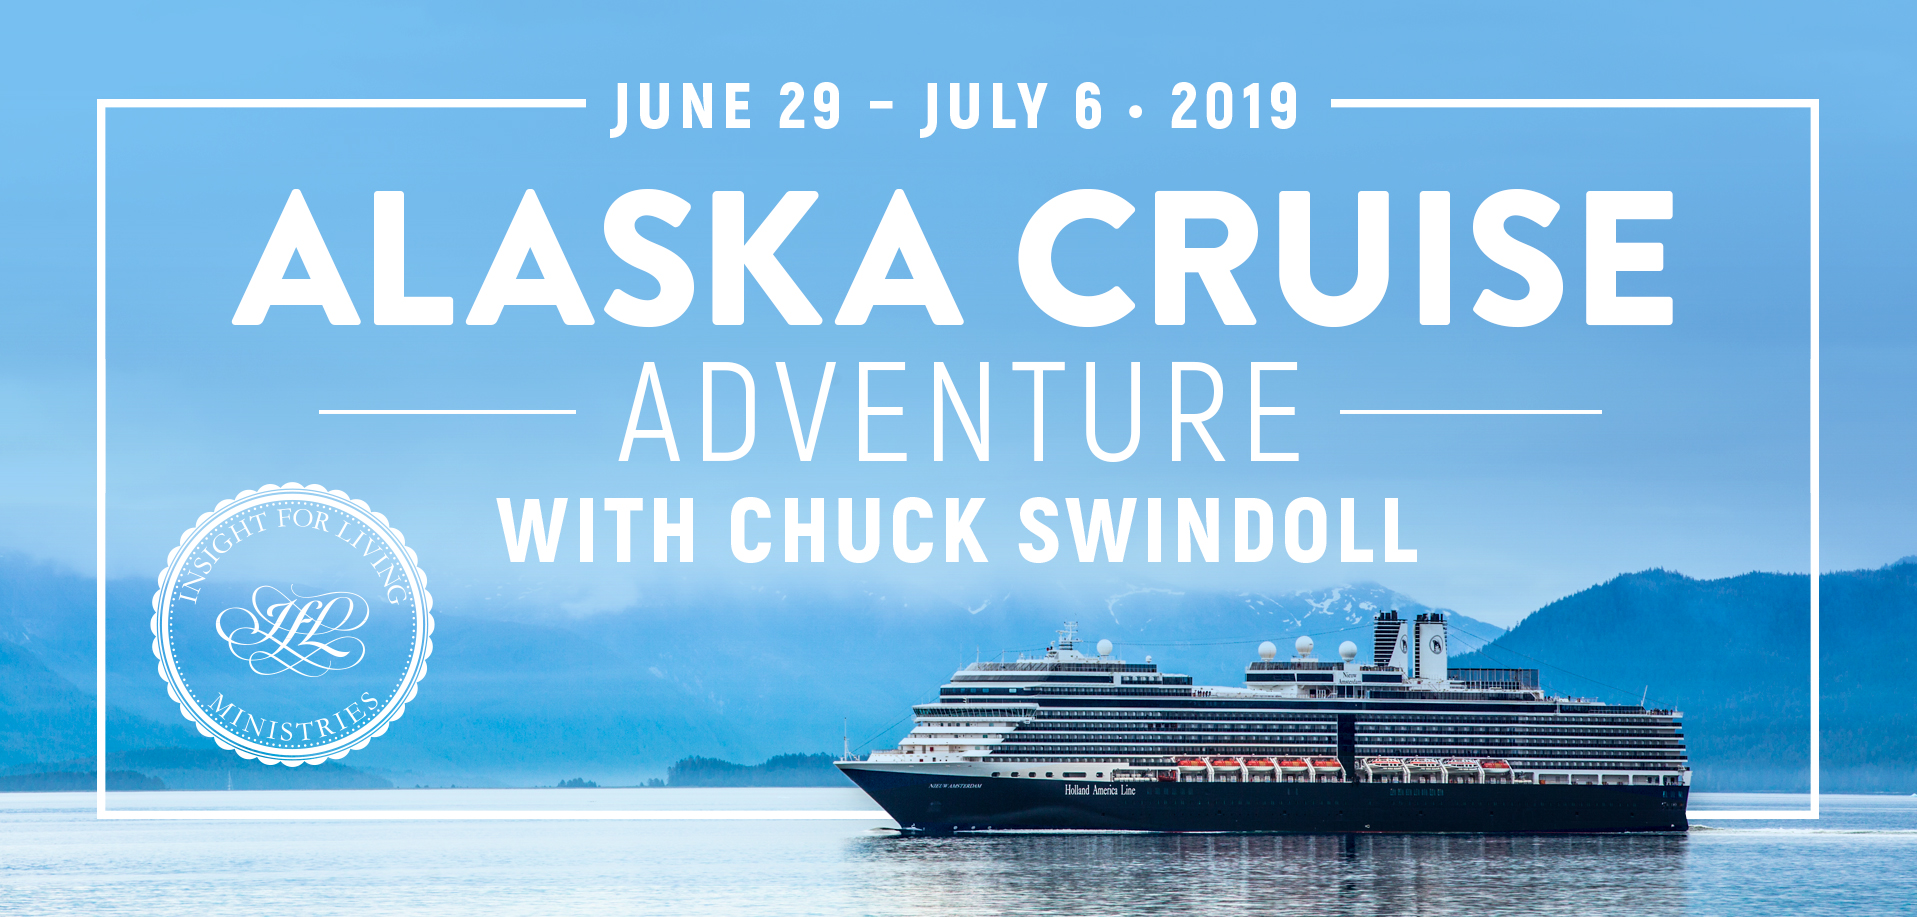 Take a Christian Cruise with Insight For Living - Christian Cruise to Alaska - June 29 - July 6, 2019